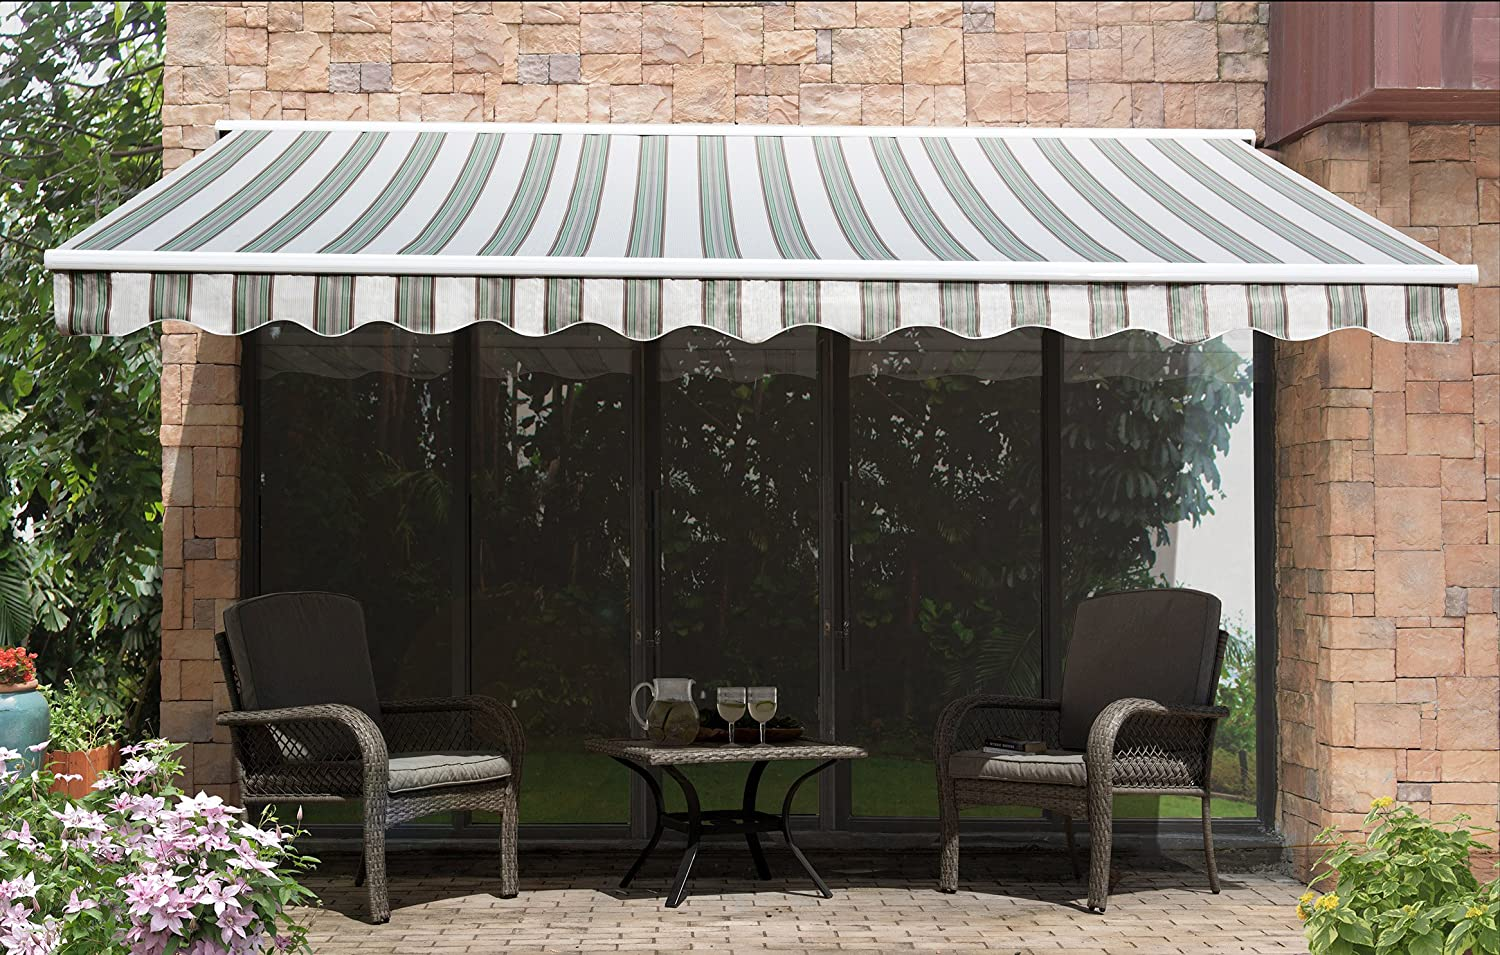 Amazon.com  Sunjoy 14u0027x 10u0027Marquise Half-Cassette Motorized Retractable Awning Green Stripe  Garden u0026 Outdoor & Amazon.com : Sunjoy 14u0027x 10u0027Marquise Half-Cassette Motorized ...